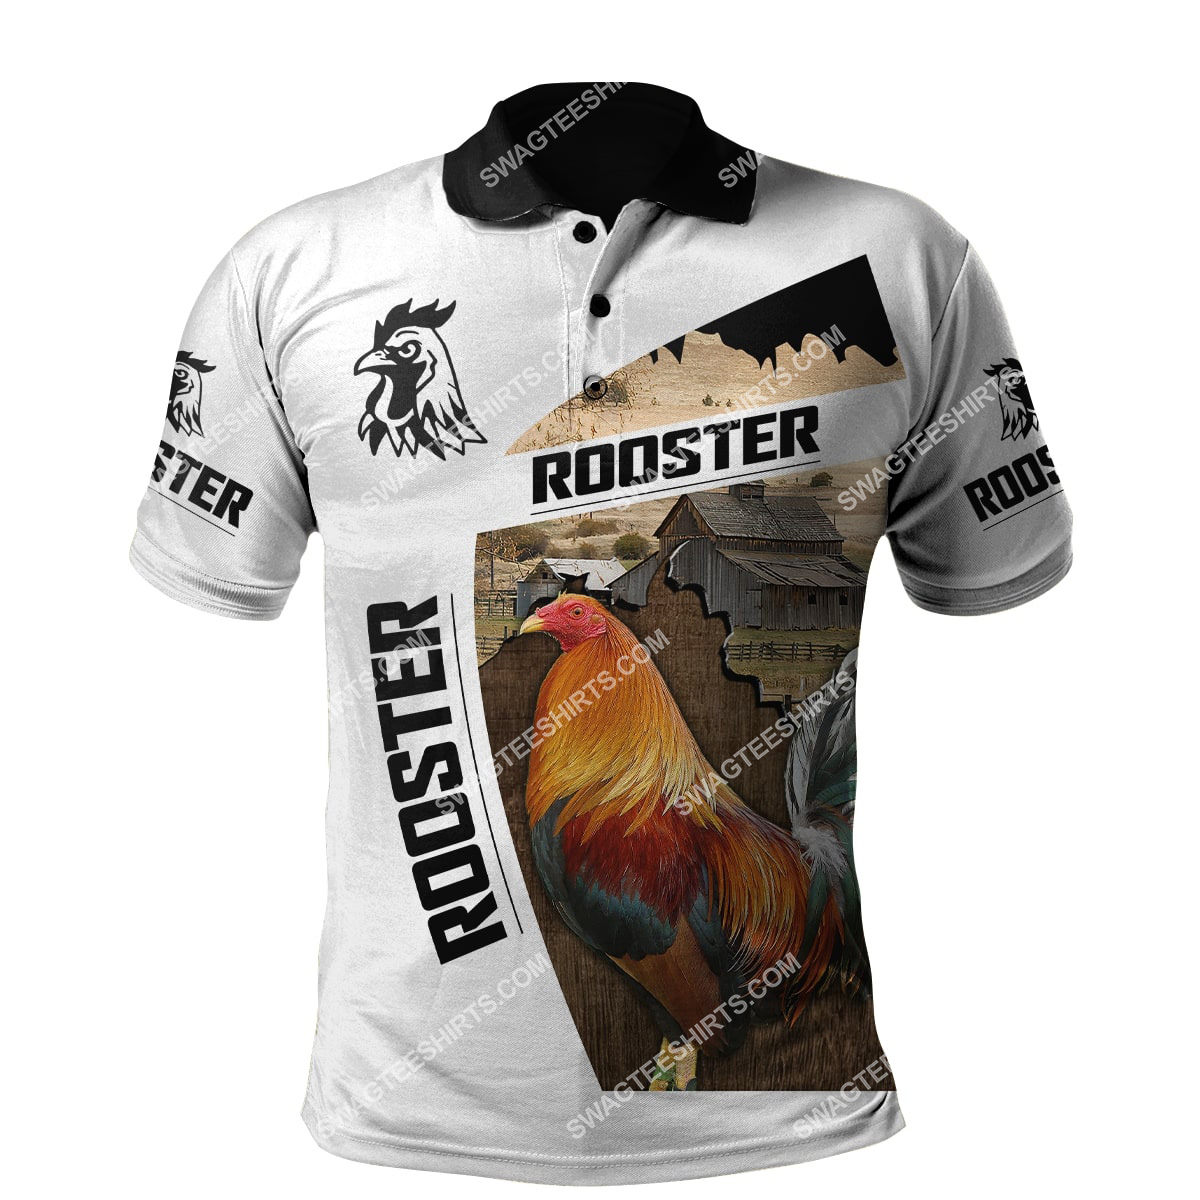 the rooster chicken and farm life full printing polo shirt 1